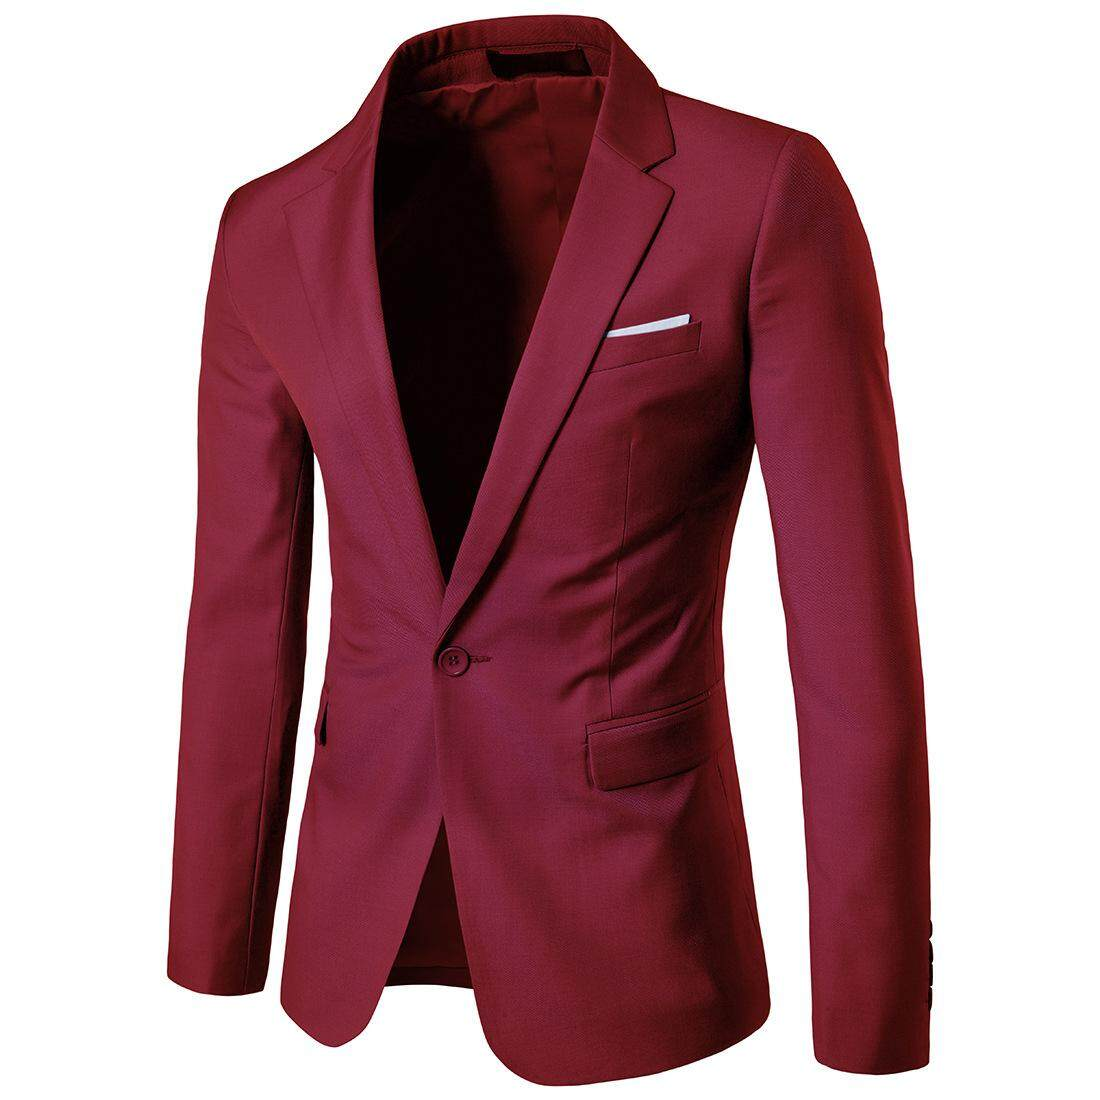 Men Blazer 2018 New Suit Men Casual Jacket Latest Coat Designs Blazers Men Clothing Plus Size S-6xl Free Gift Brooch By Yangs House.